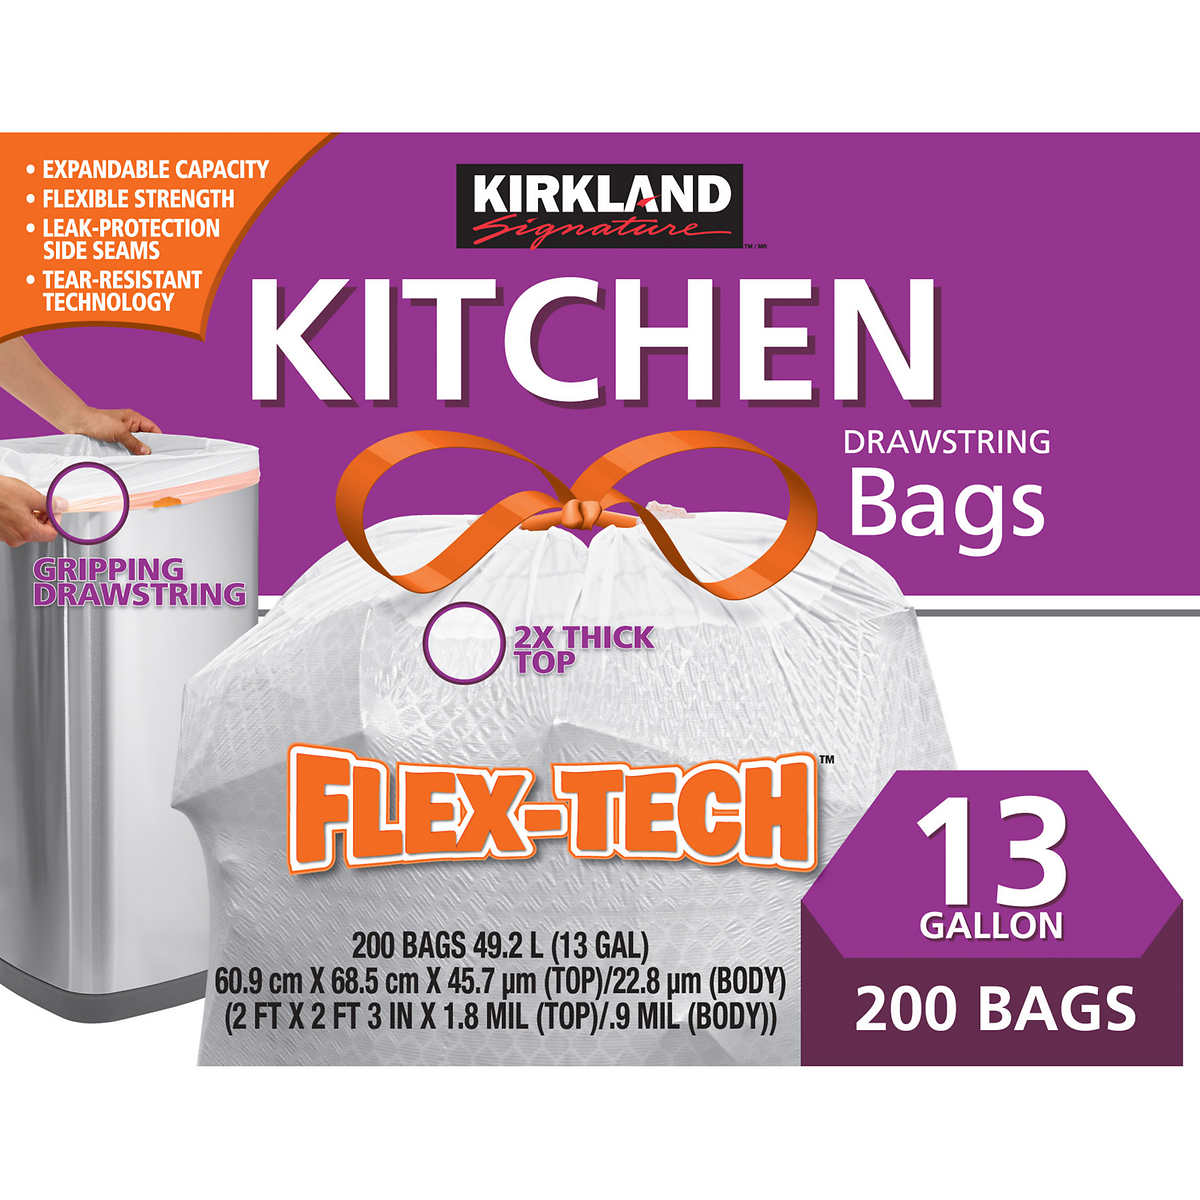 Kitchen Garbage Bags: Kirkland Signature Drawstring Kitchen Trash Bags 13 Gallon